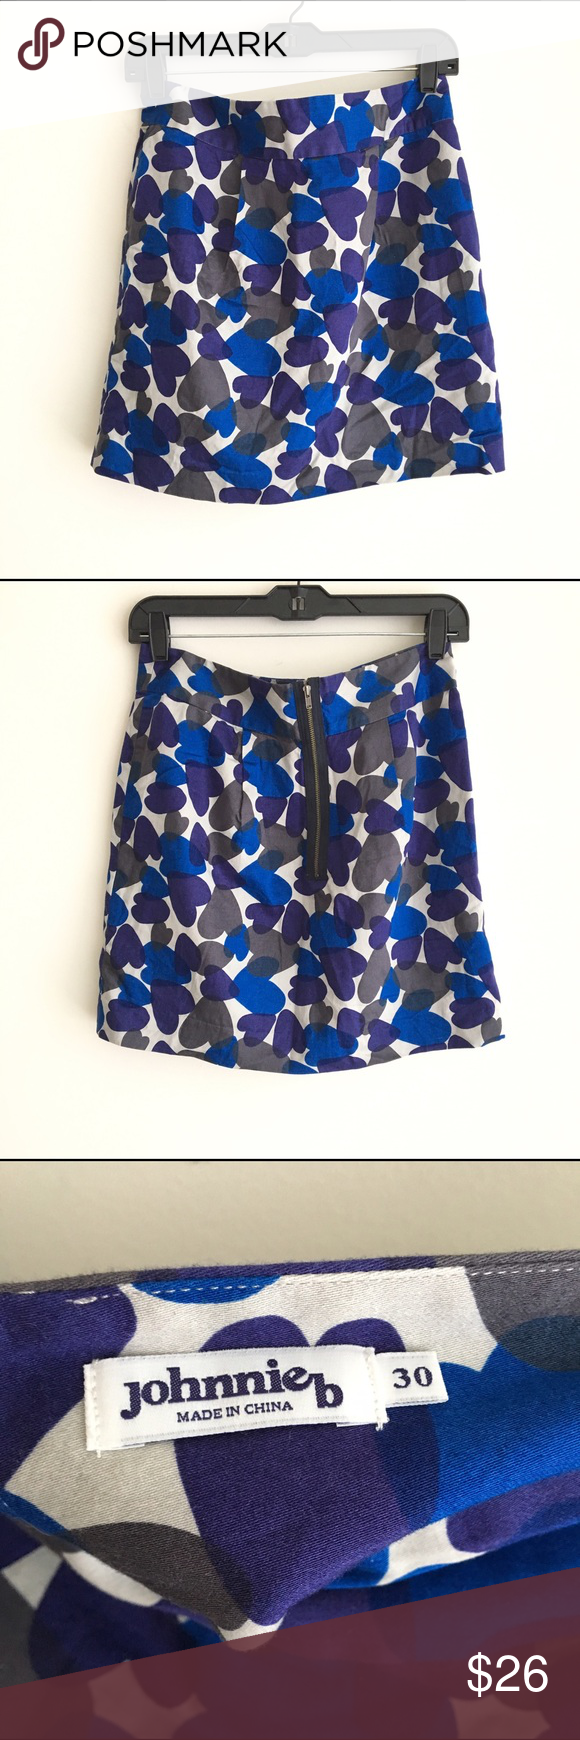 Johnnie  girls blue heart skirt waist length fully lined with exposed zipper in the back purple and gray print all over also rh pinterest